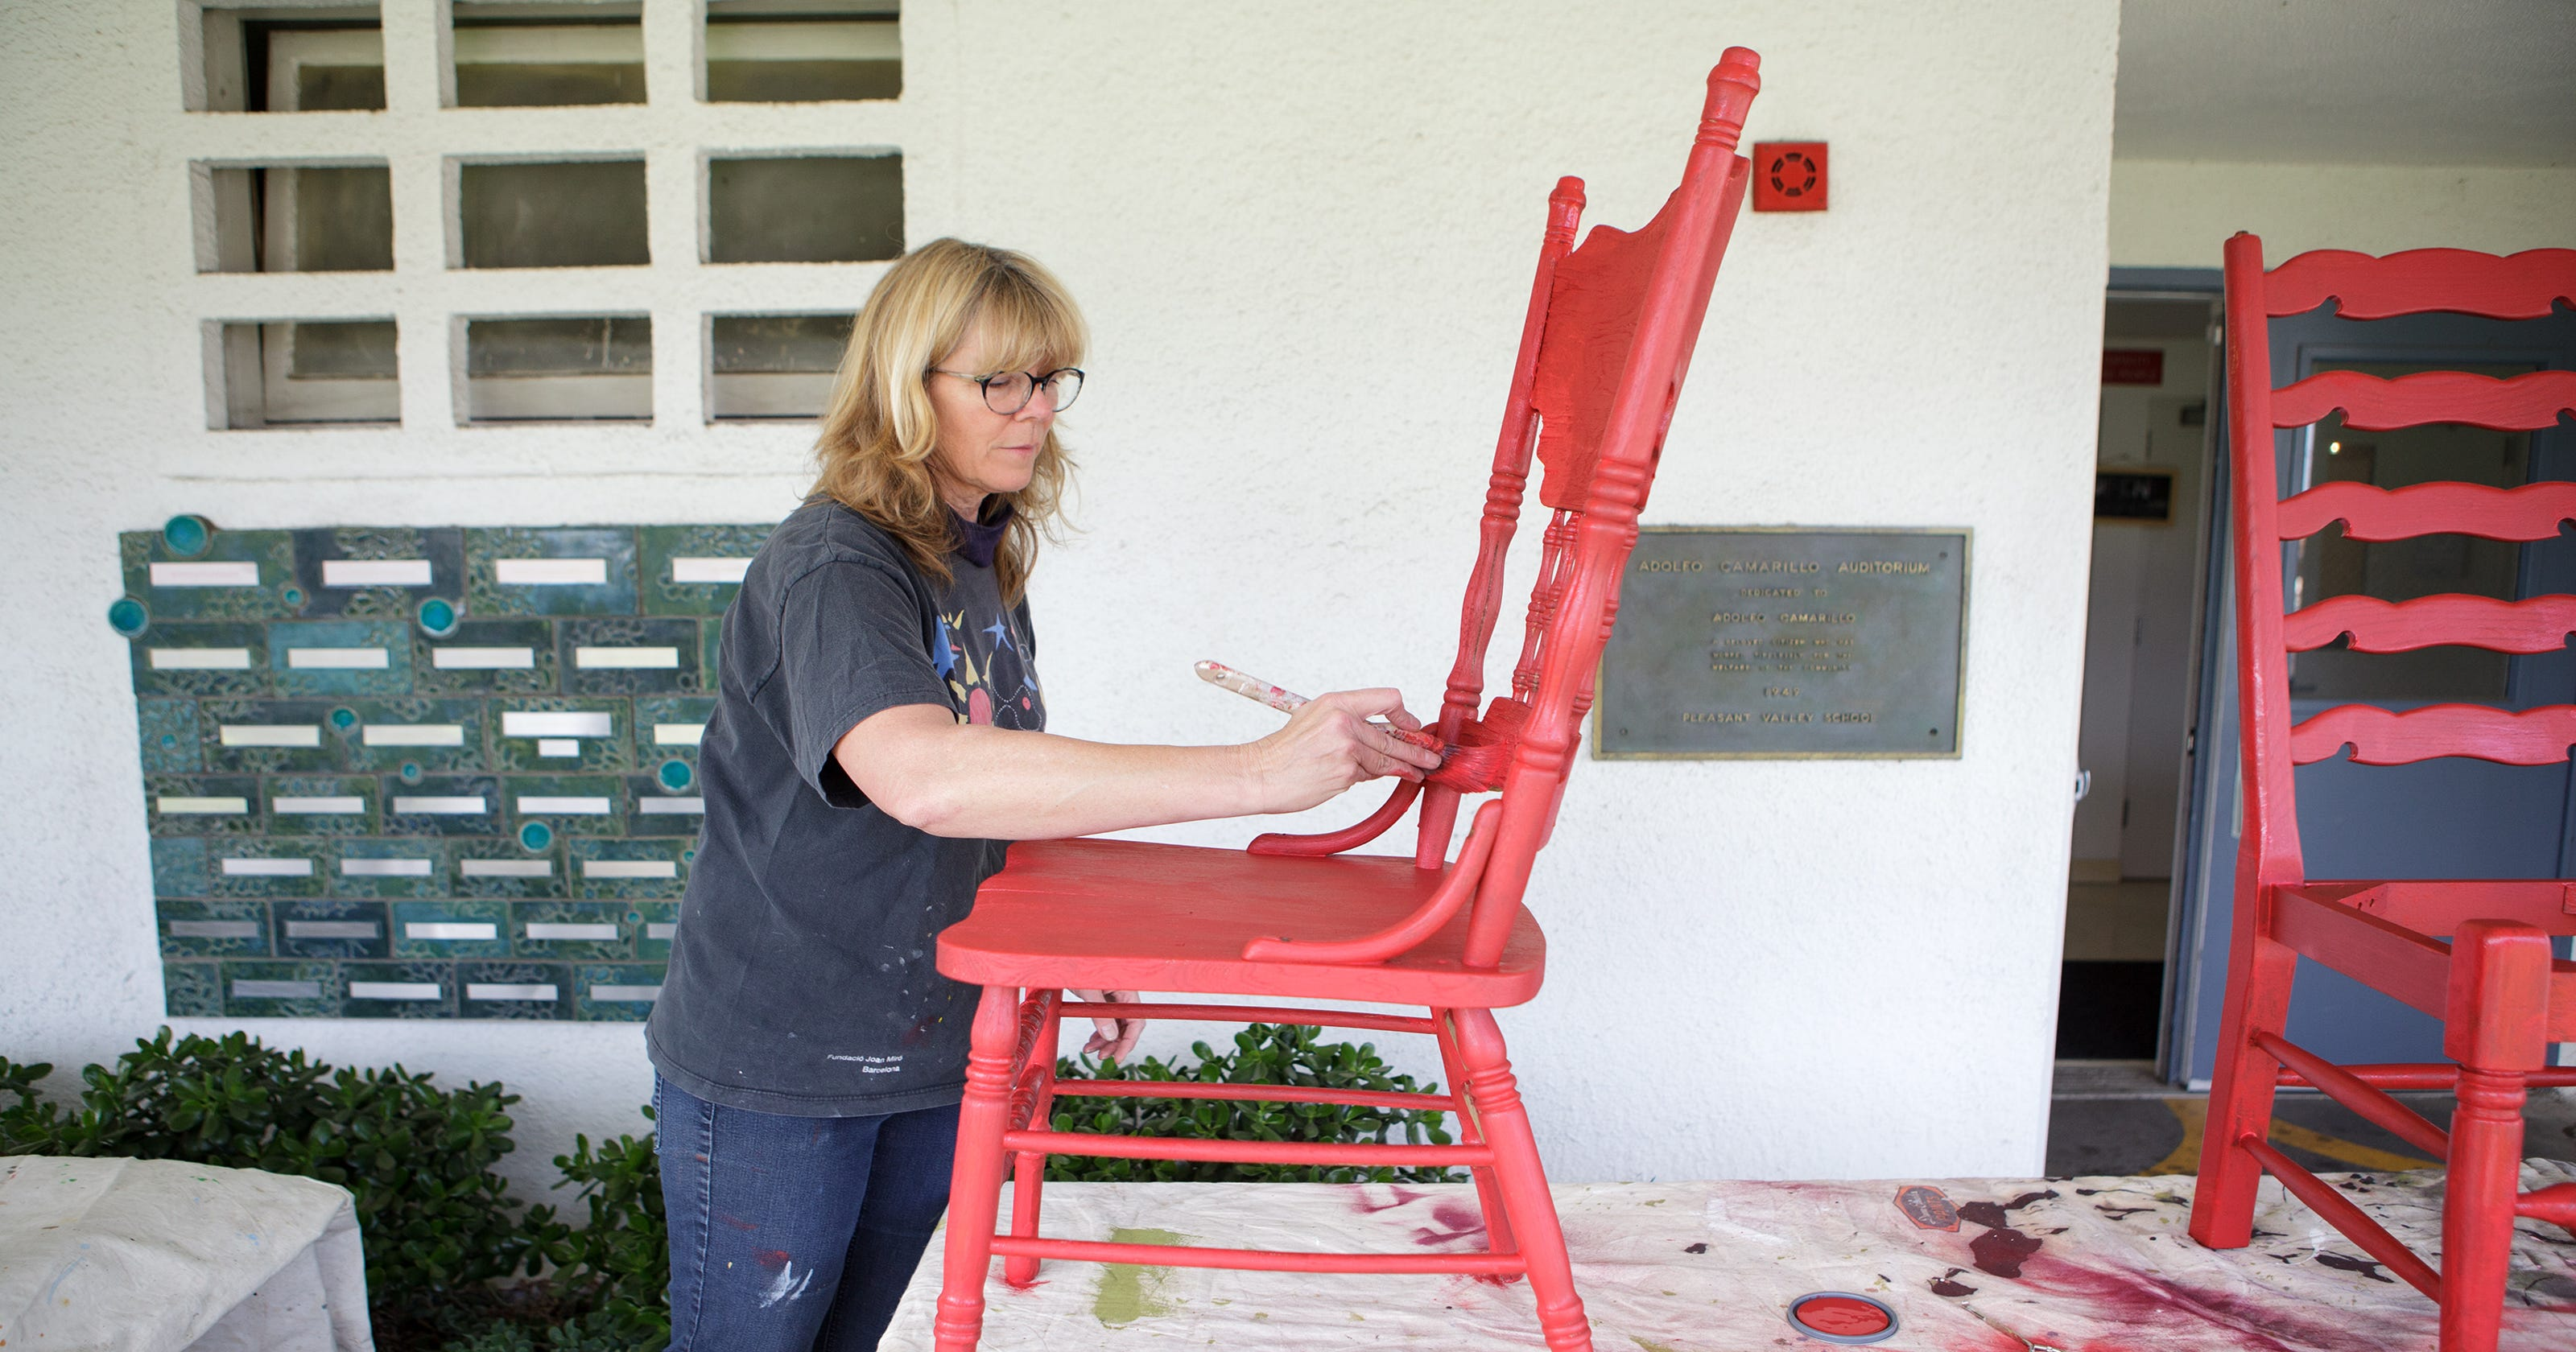 Artists Start Conversation With Red Chairs In Camarillo